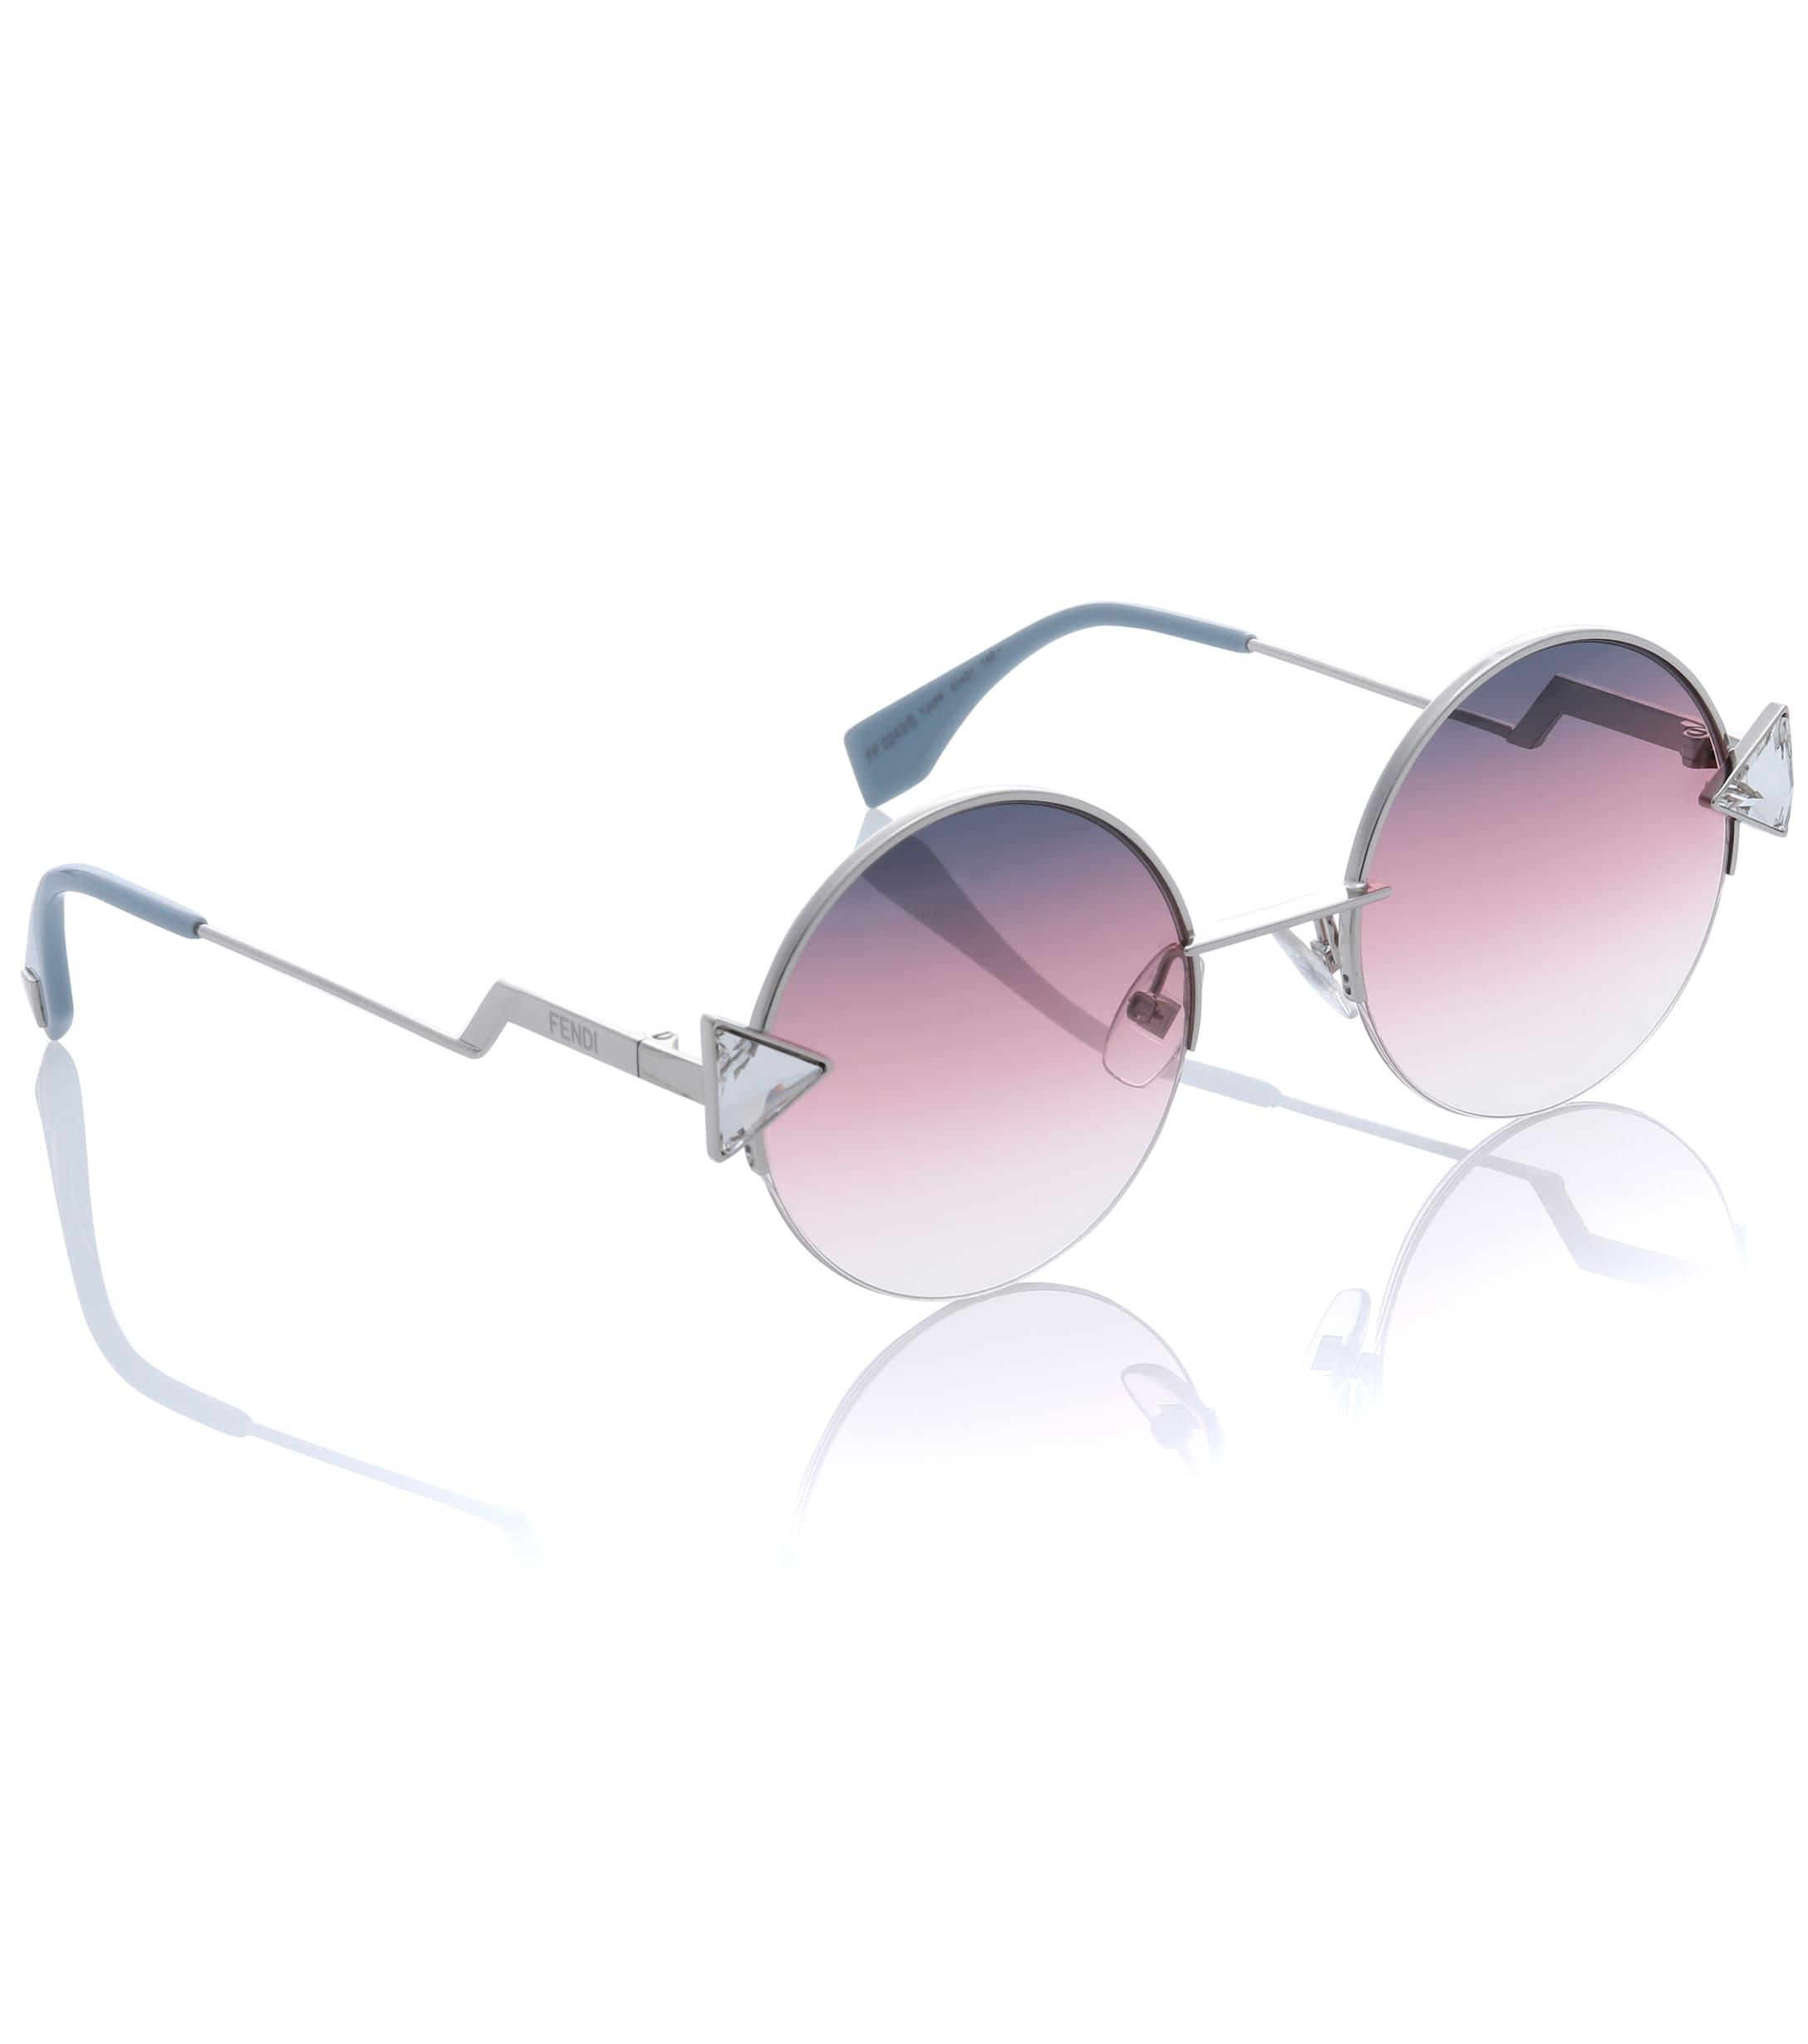 a59f96bf020a Gallery. Previously sold at  Mytheresa · Women s Round Sunglasses ...